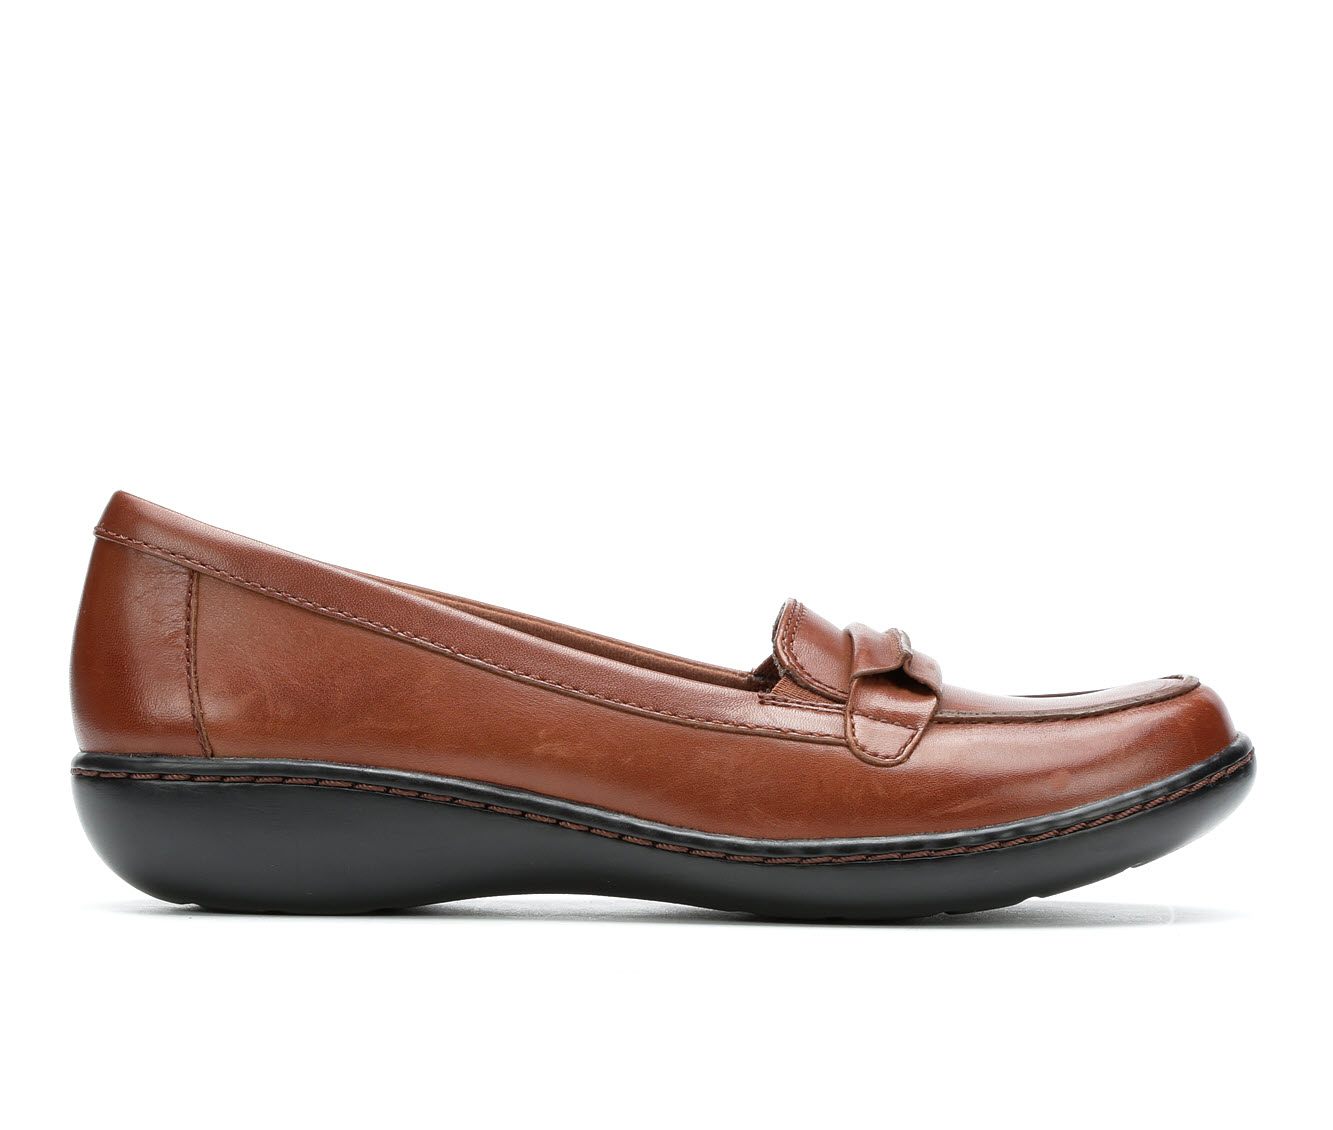 Clarks Ashland Lily Women's Shoe (Brown Leather)